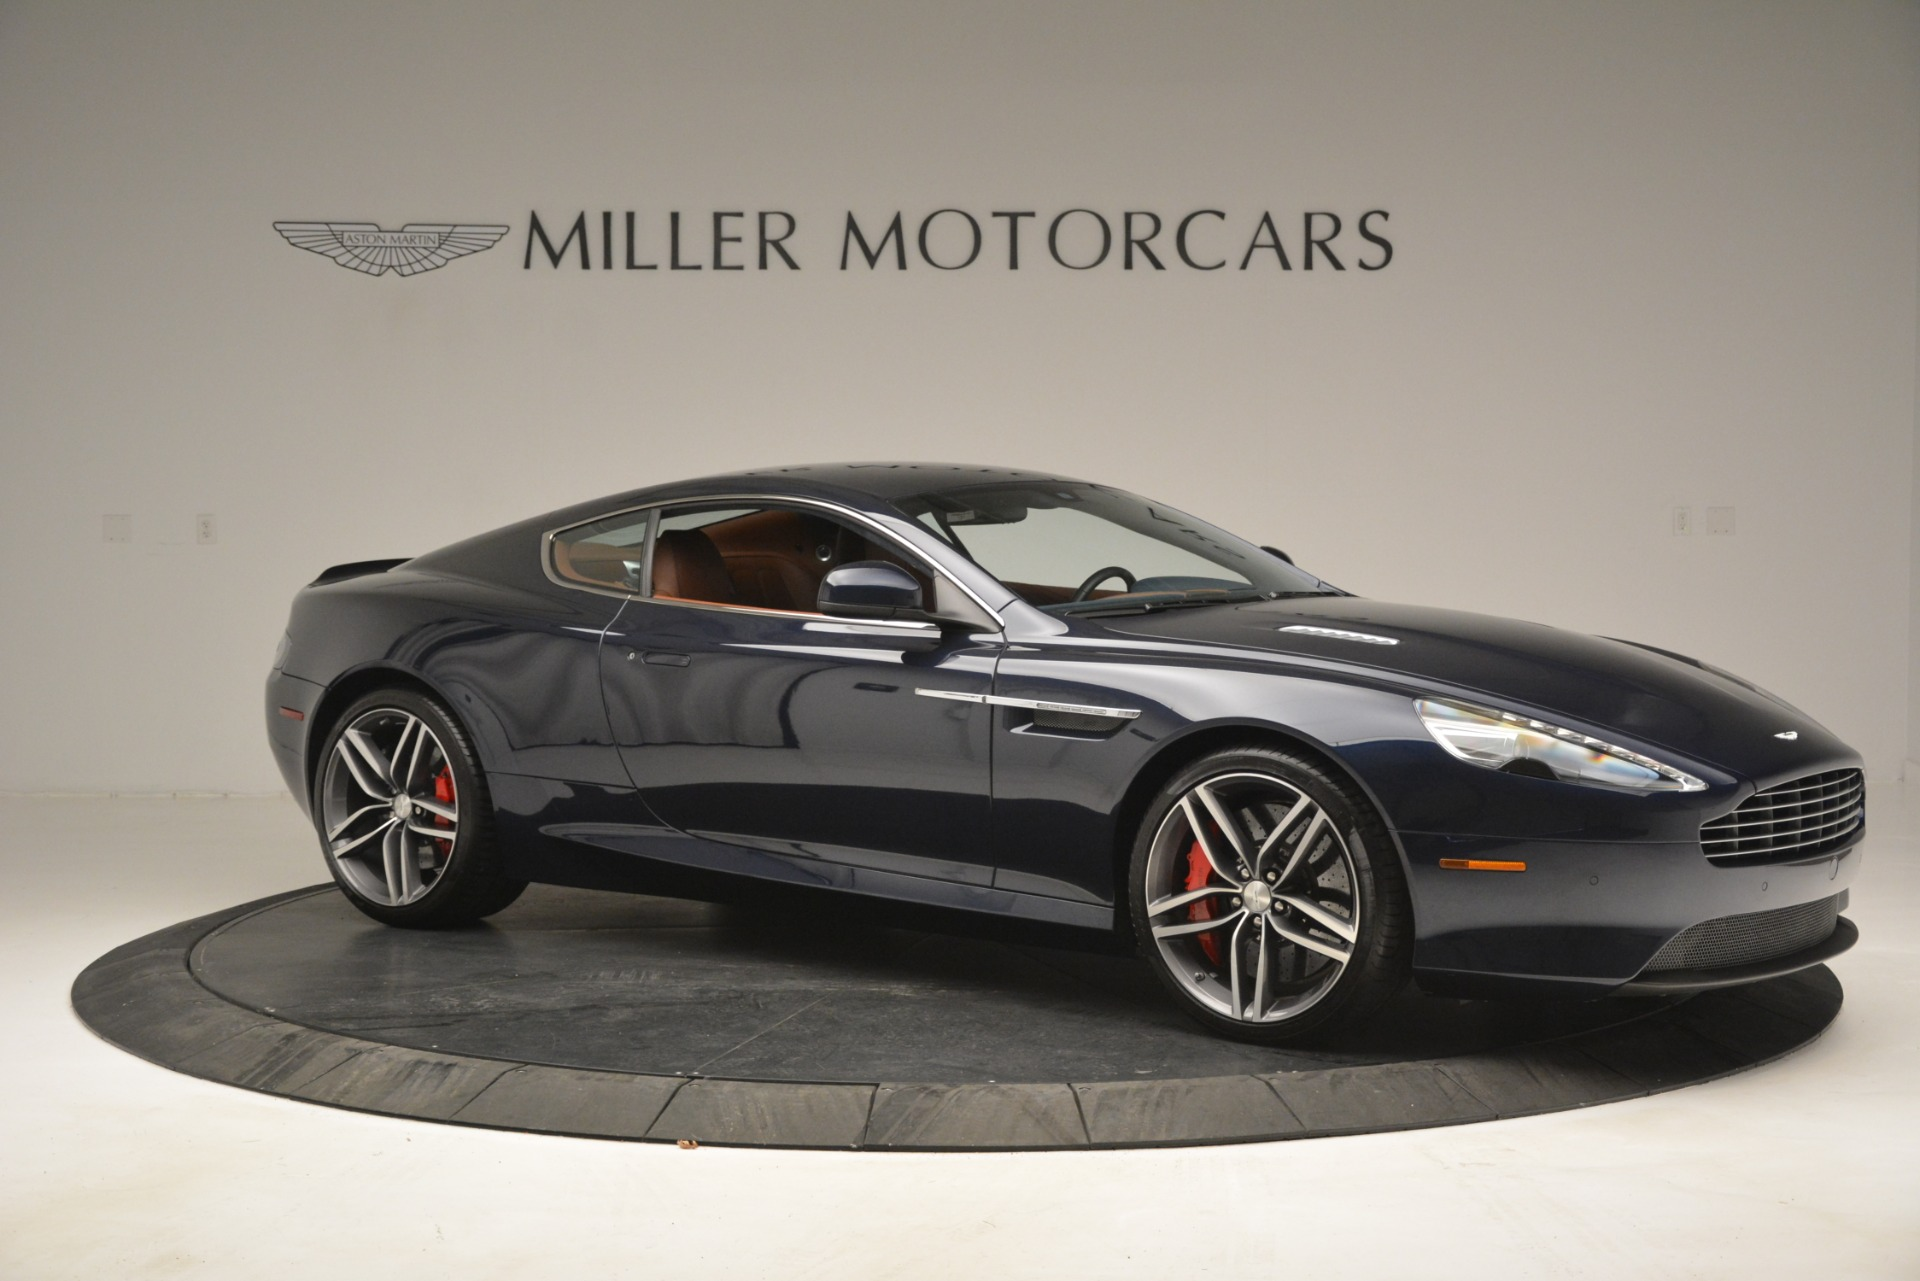 Used 2014 Aston Martin DB9 Coupe For Sale In Greenwich, CT 3010_p10